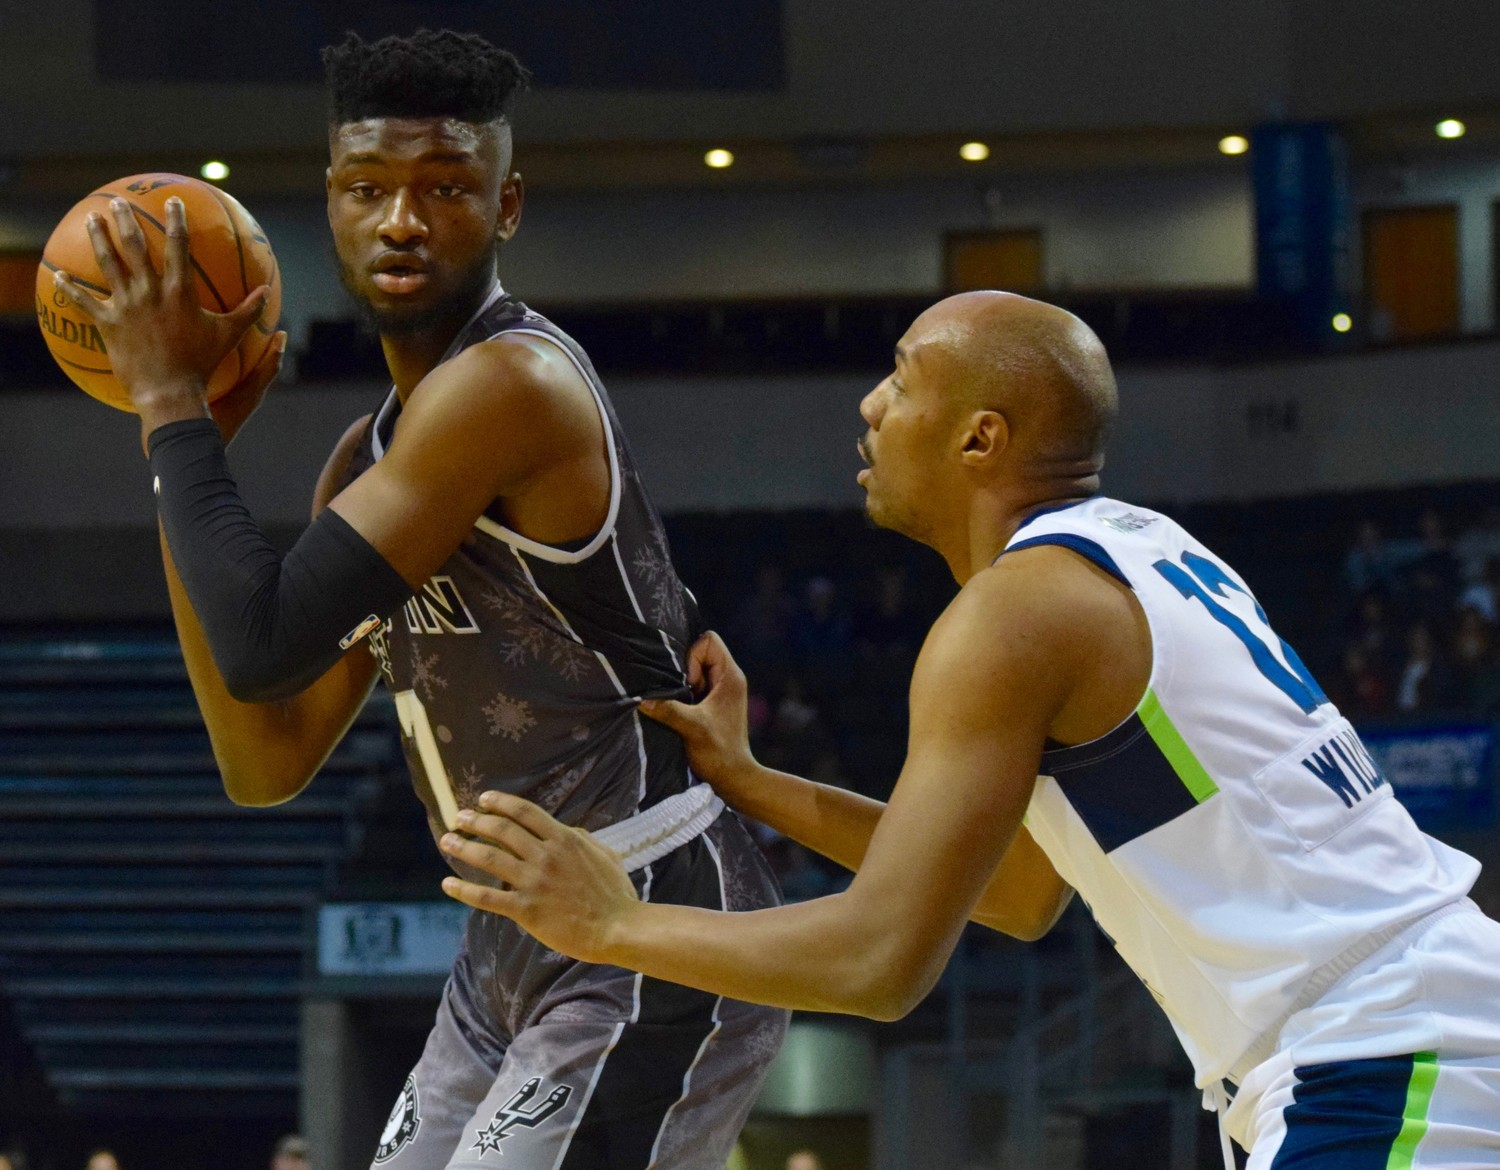 Chimezie Metu scored 21 points and the Austin Spurs beat the Iowa Wolves 118-116 on Saturday night.